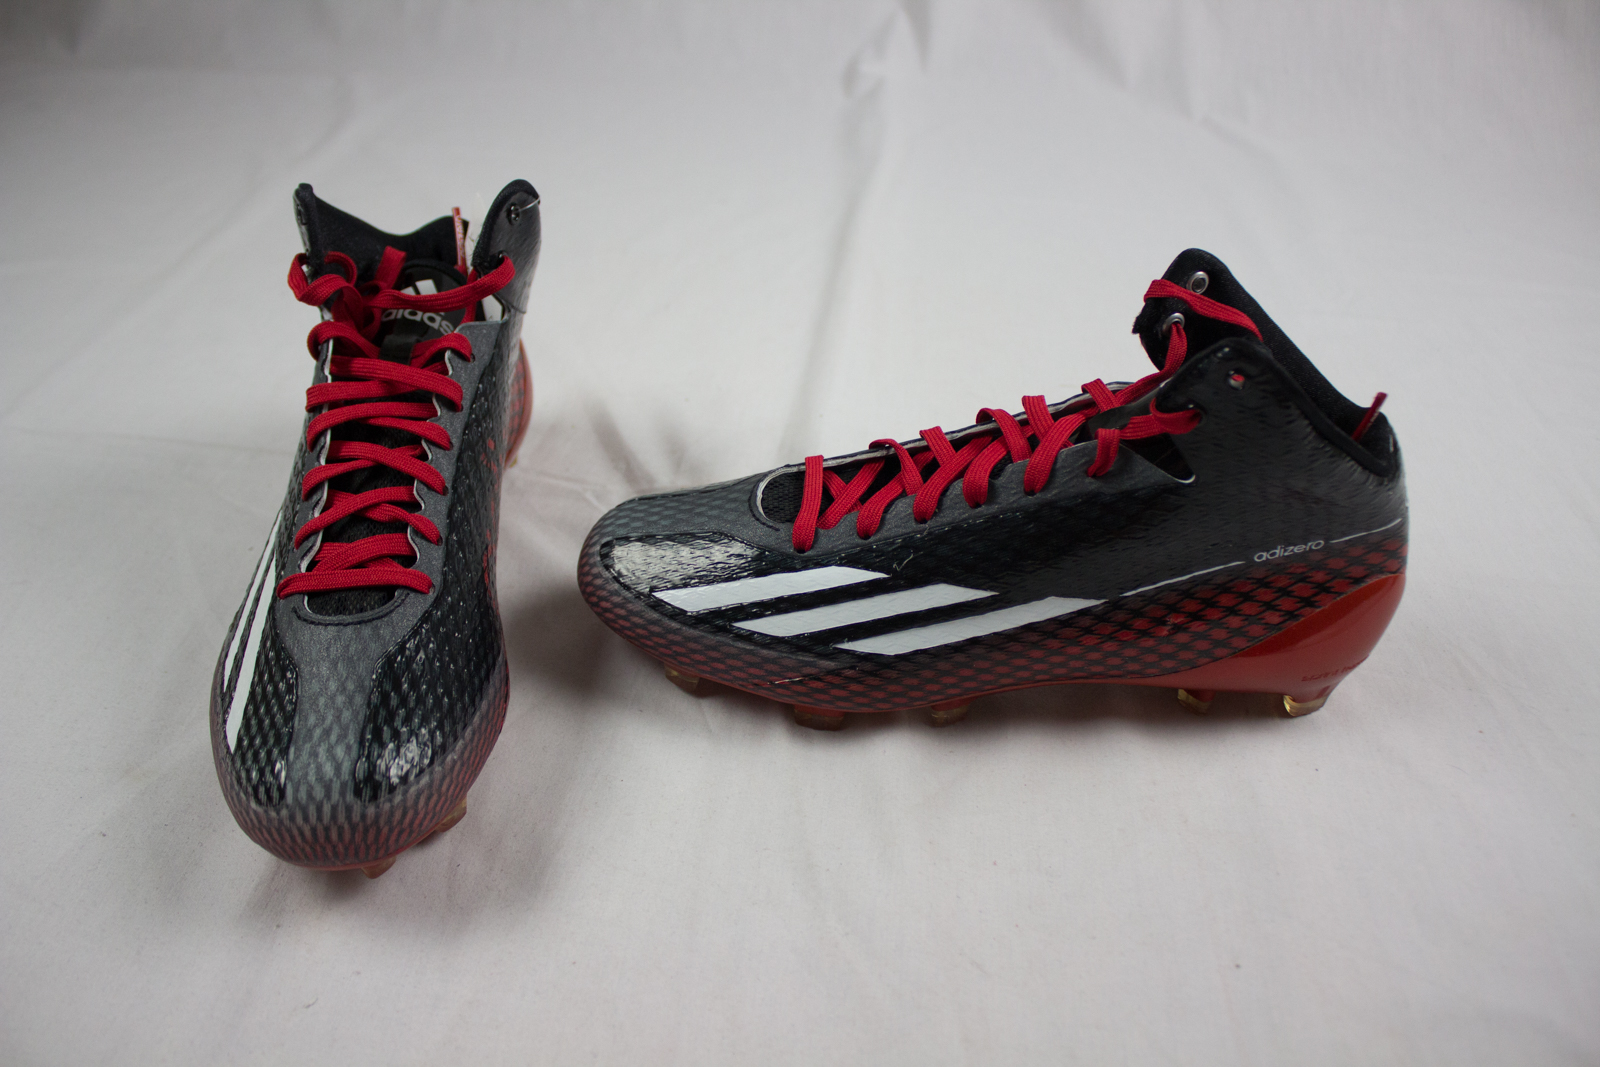 best sneakers 54a5e 8362f Details about NEW adidas adizero 5-star 3.0 Mid - BlackRed Cleats (Mens  Multiple Sizes)